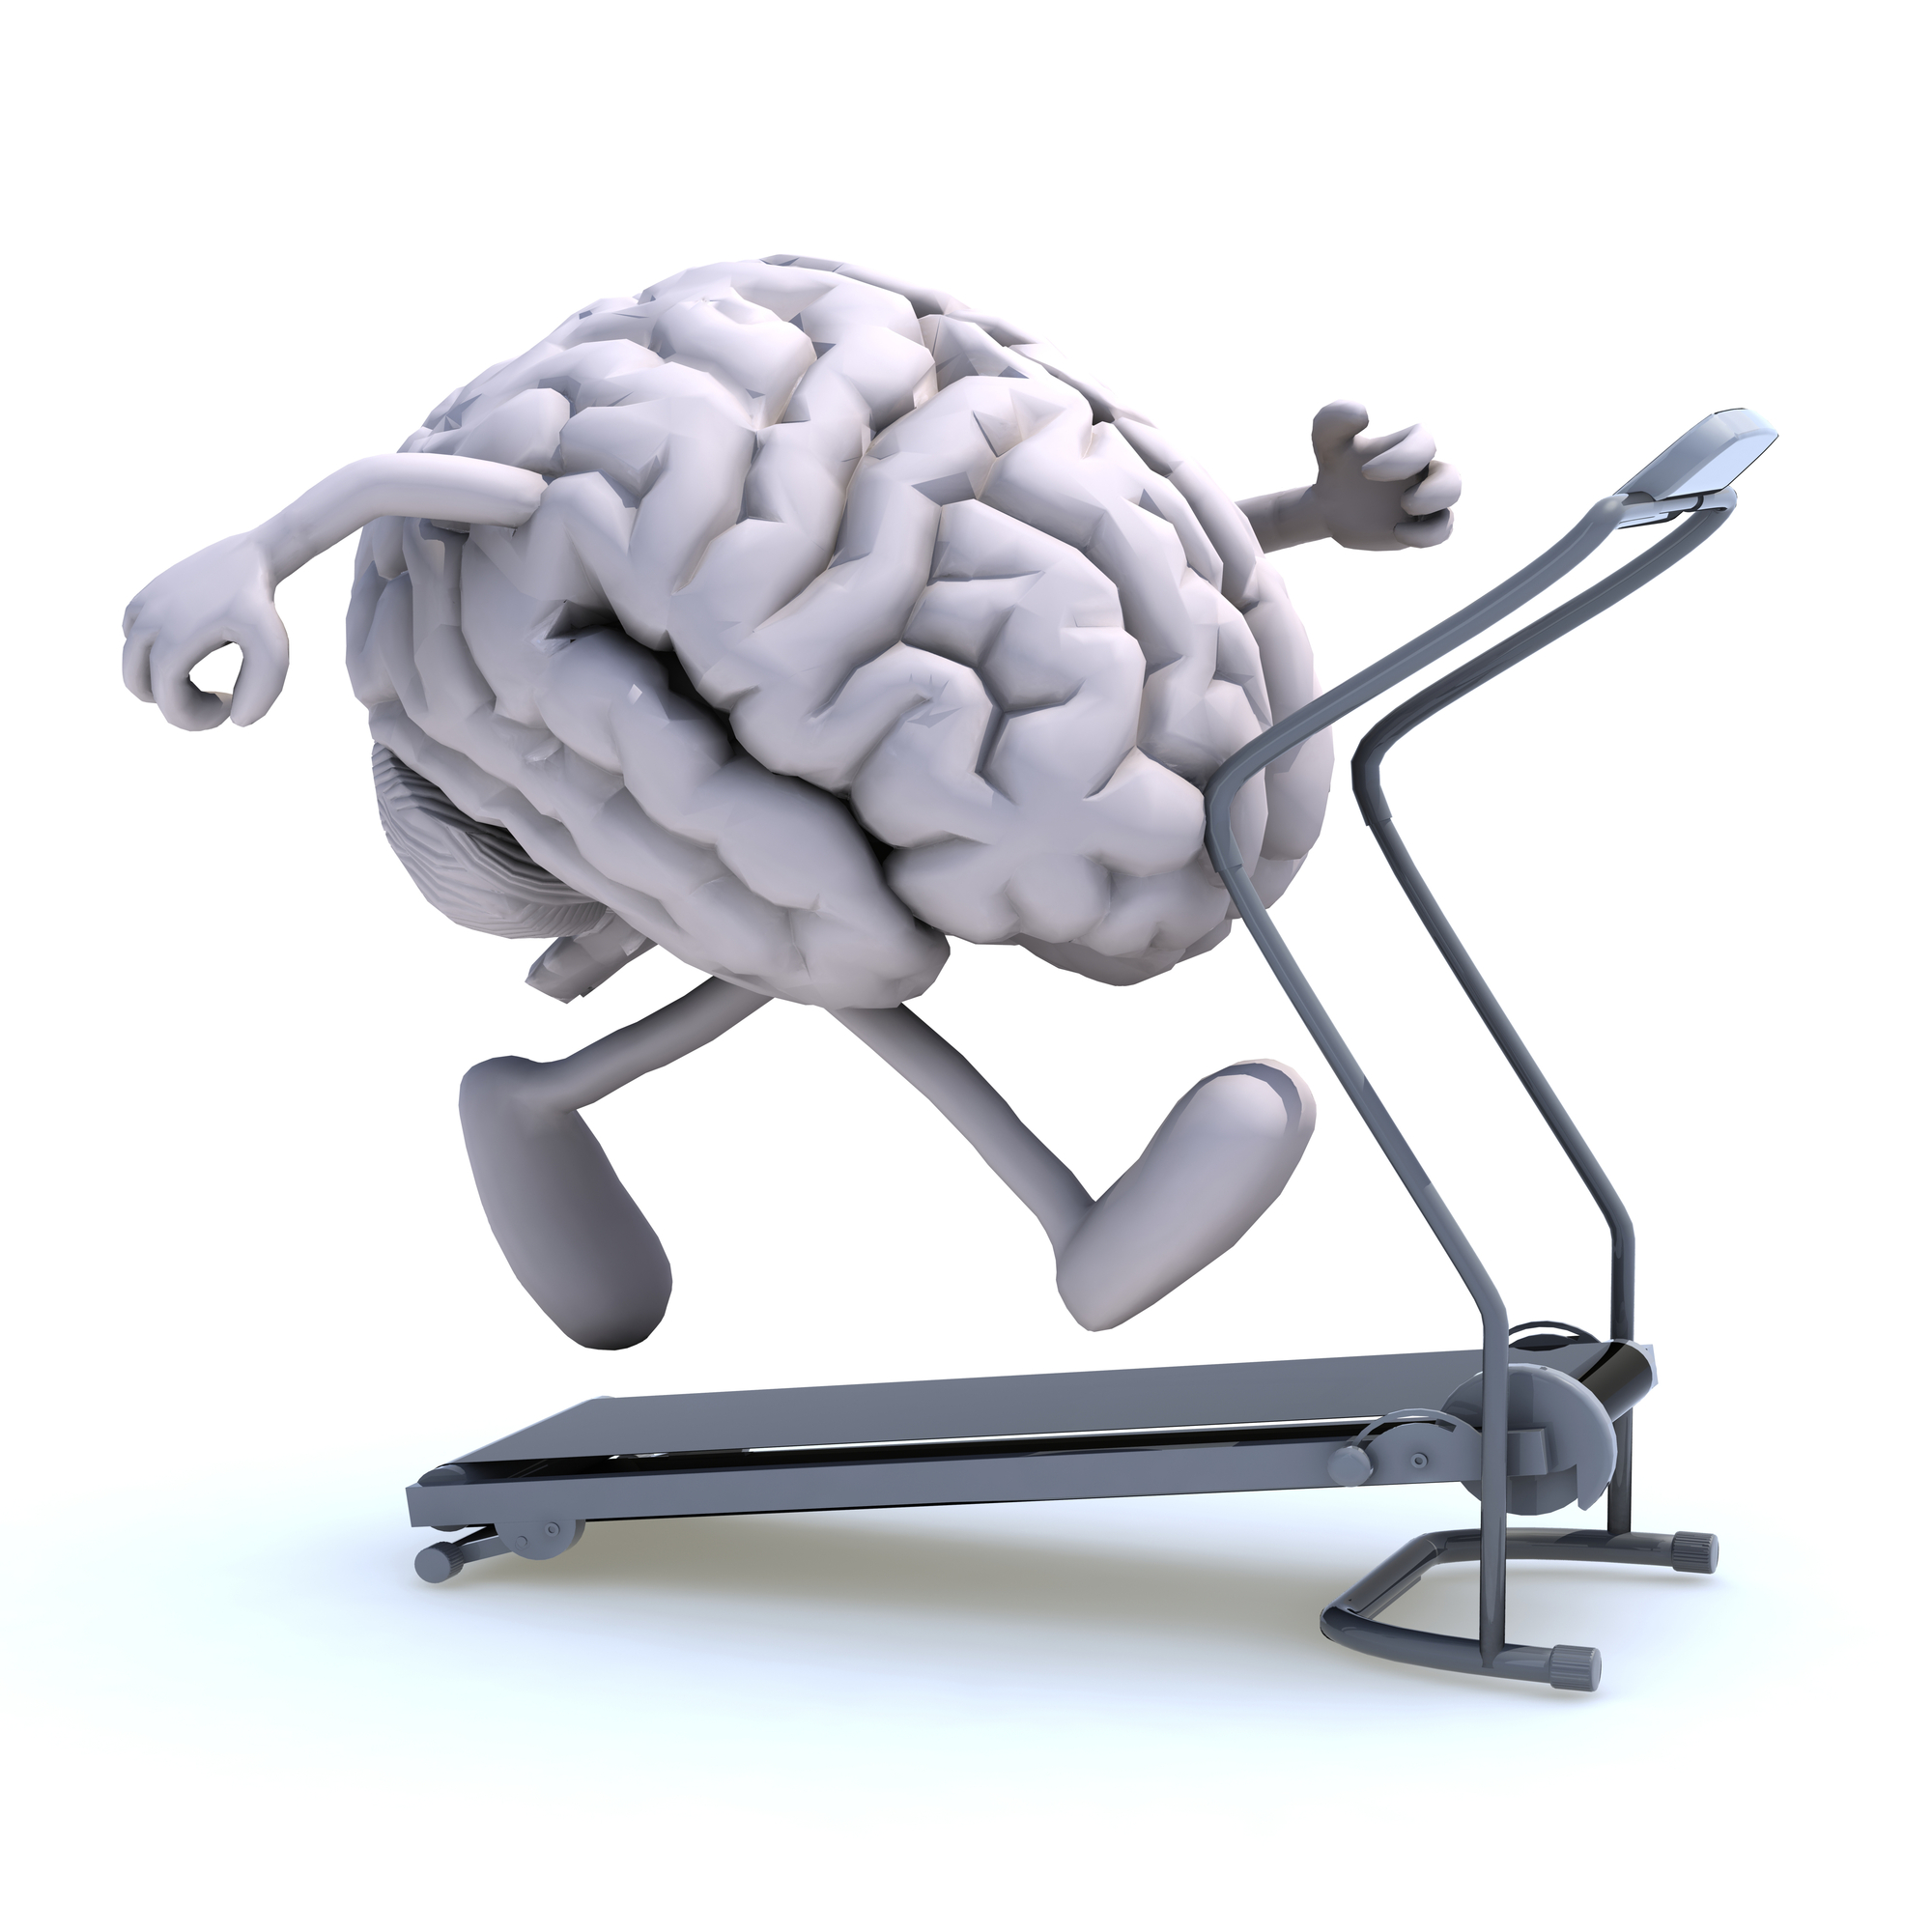 Image of a brain working out, what American escape rooms offer, a mindful experience.